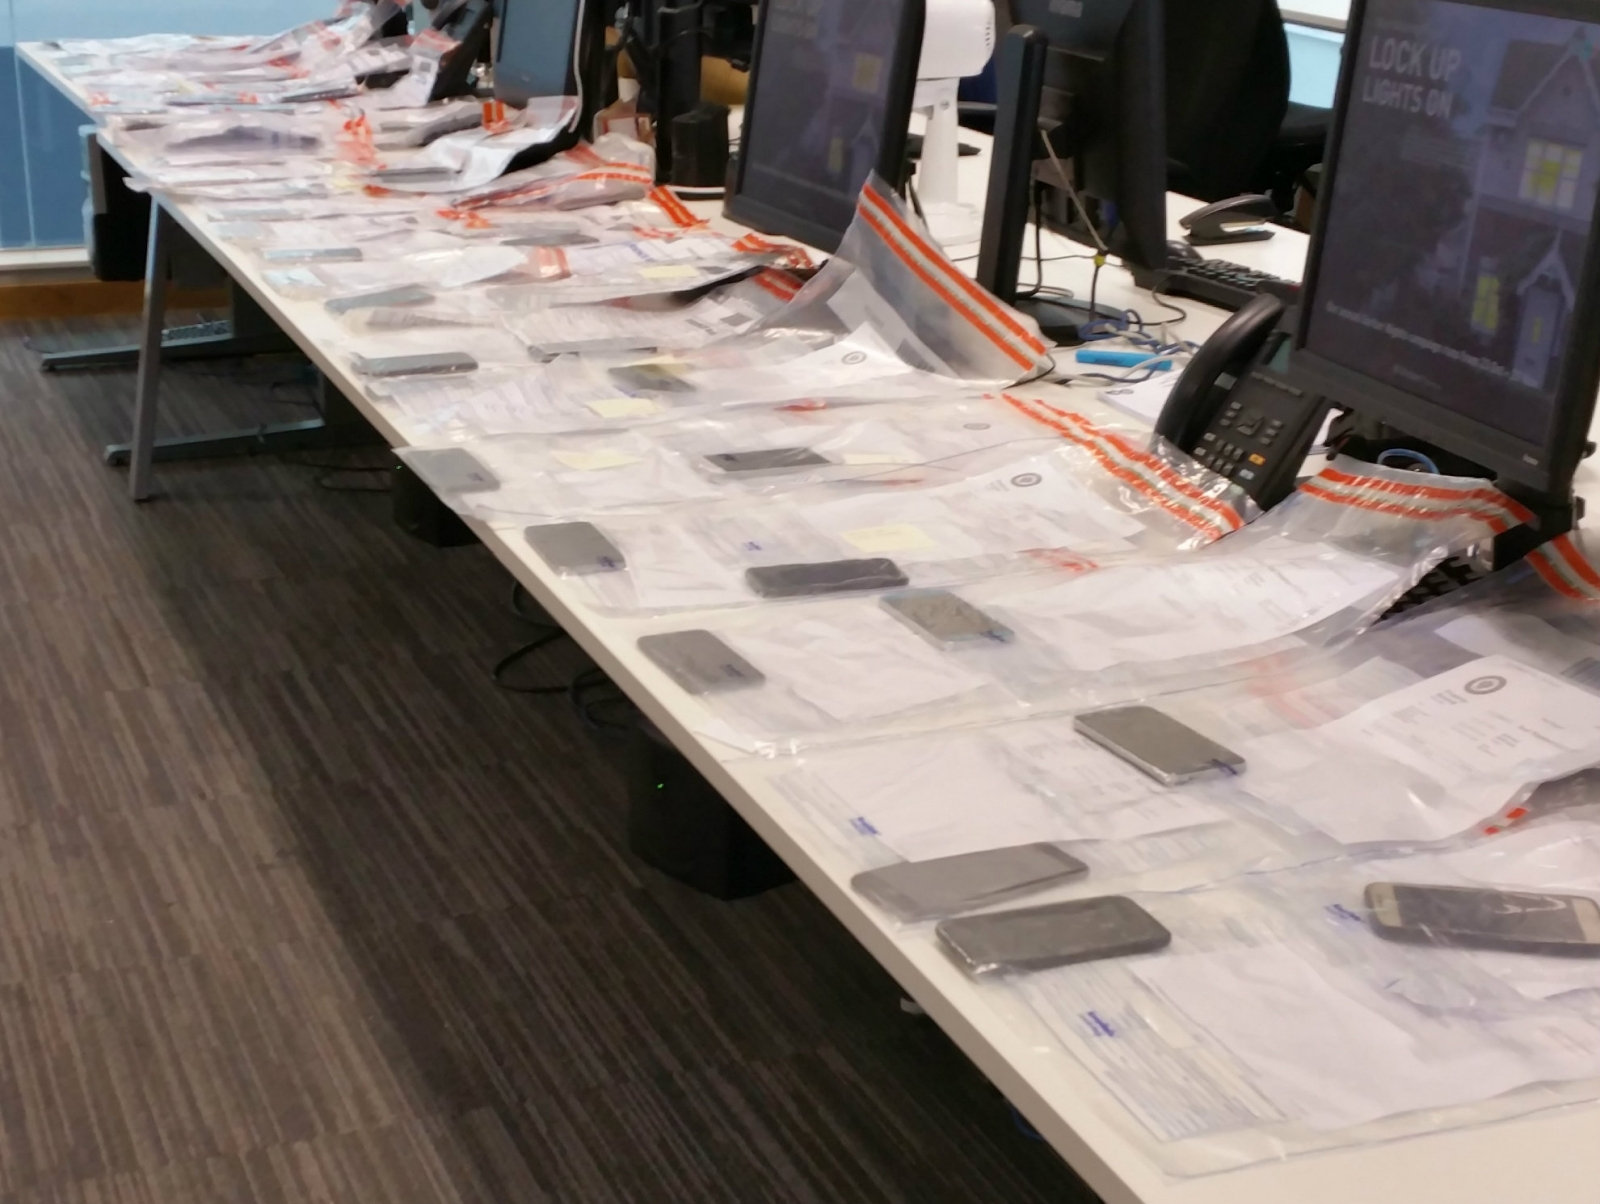 Suspect caught with 53 phones